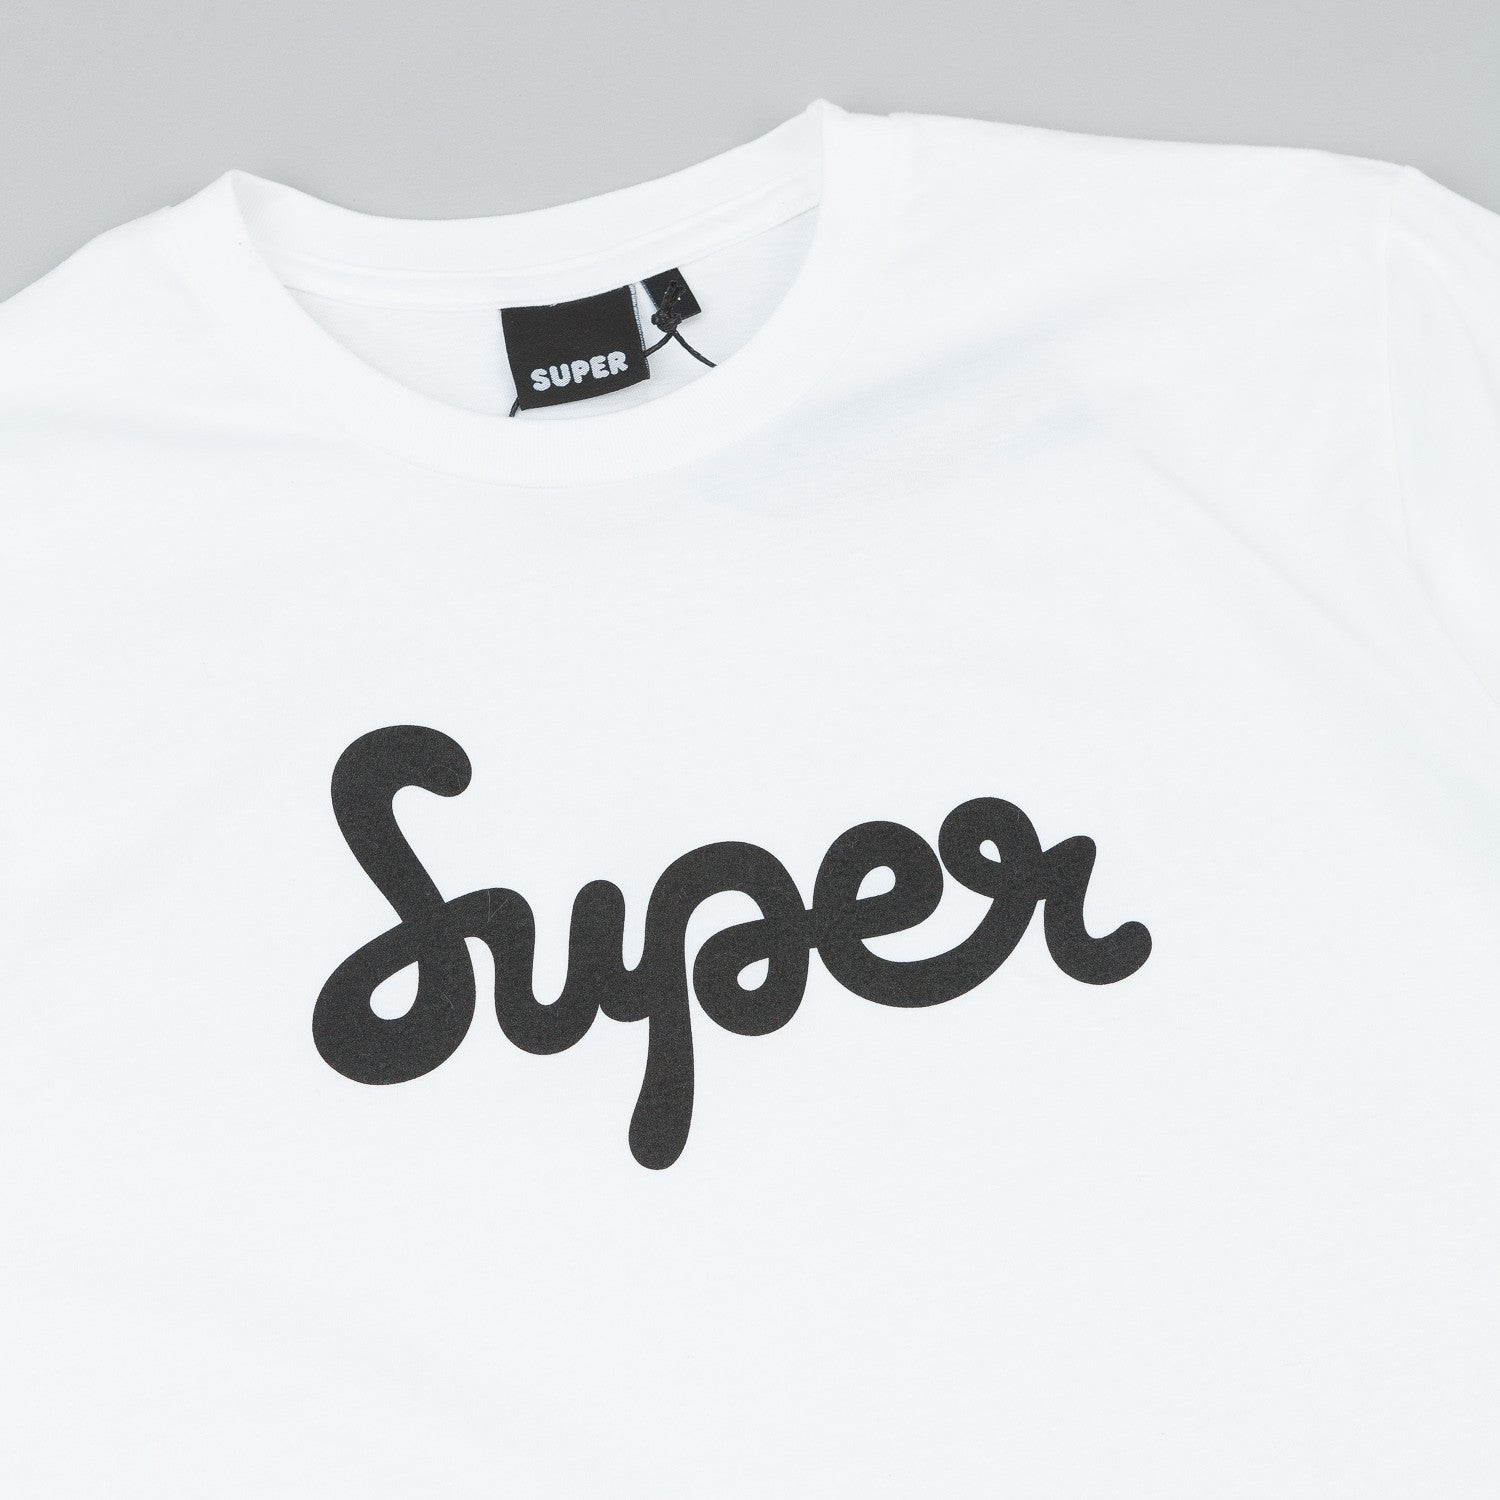 Colorsuper Signature MKIII T-Shirt - White / Black